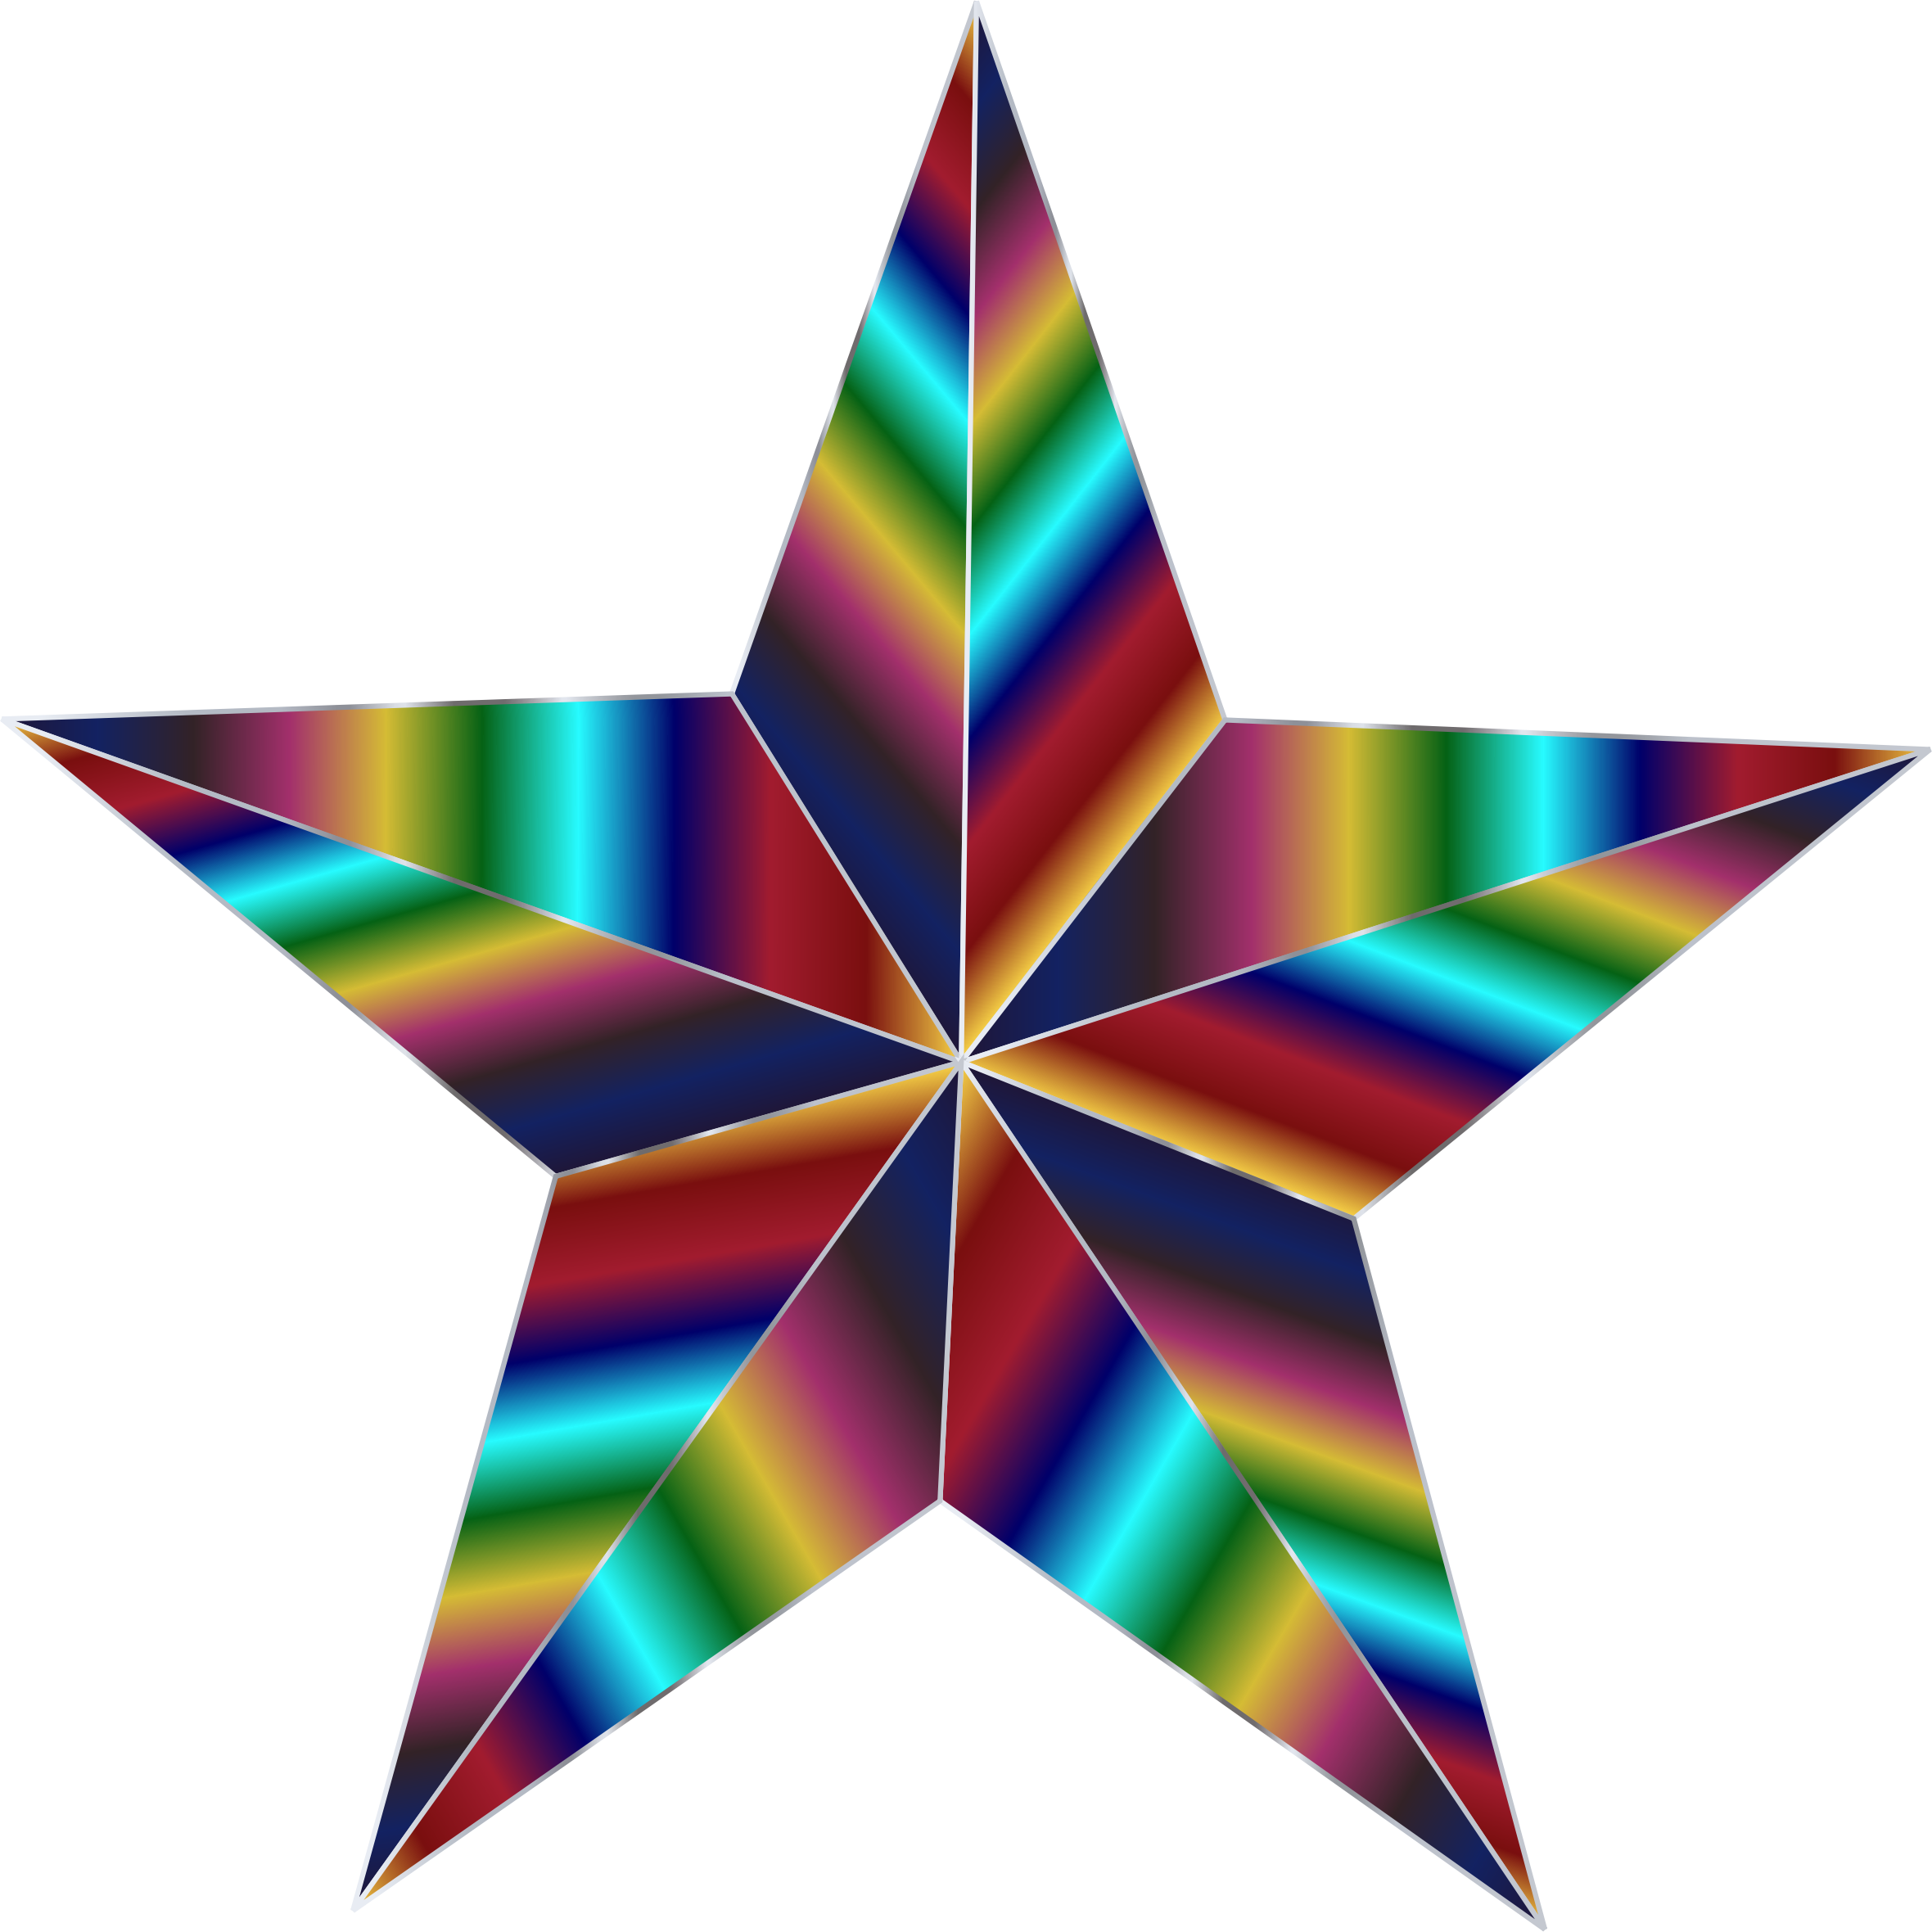 Prismatic Star 3 by GDJ